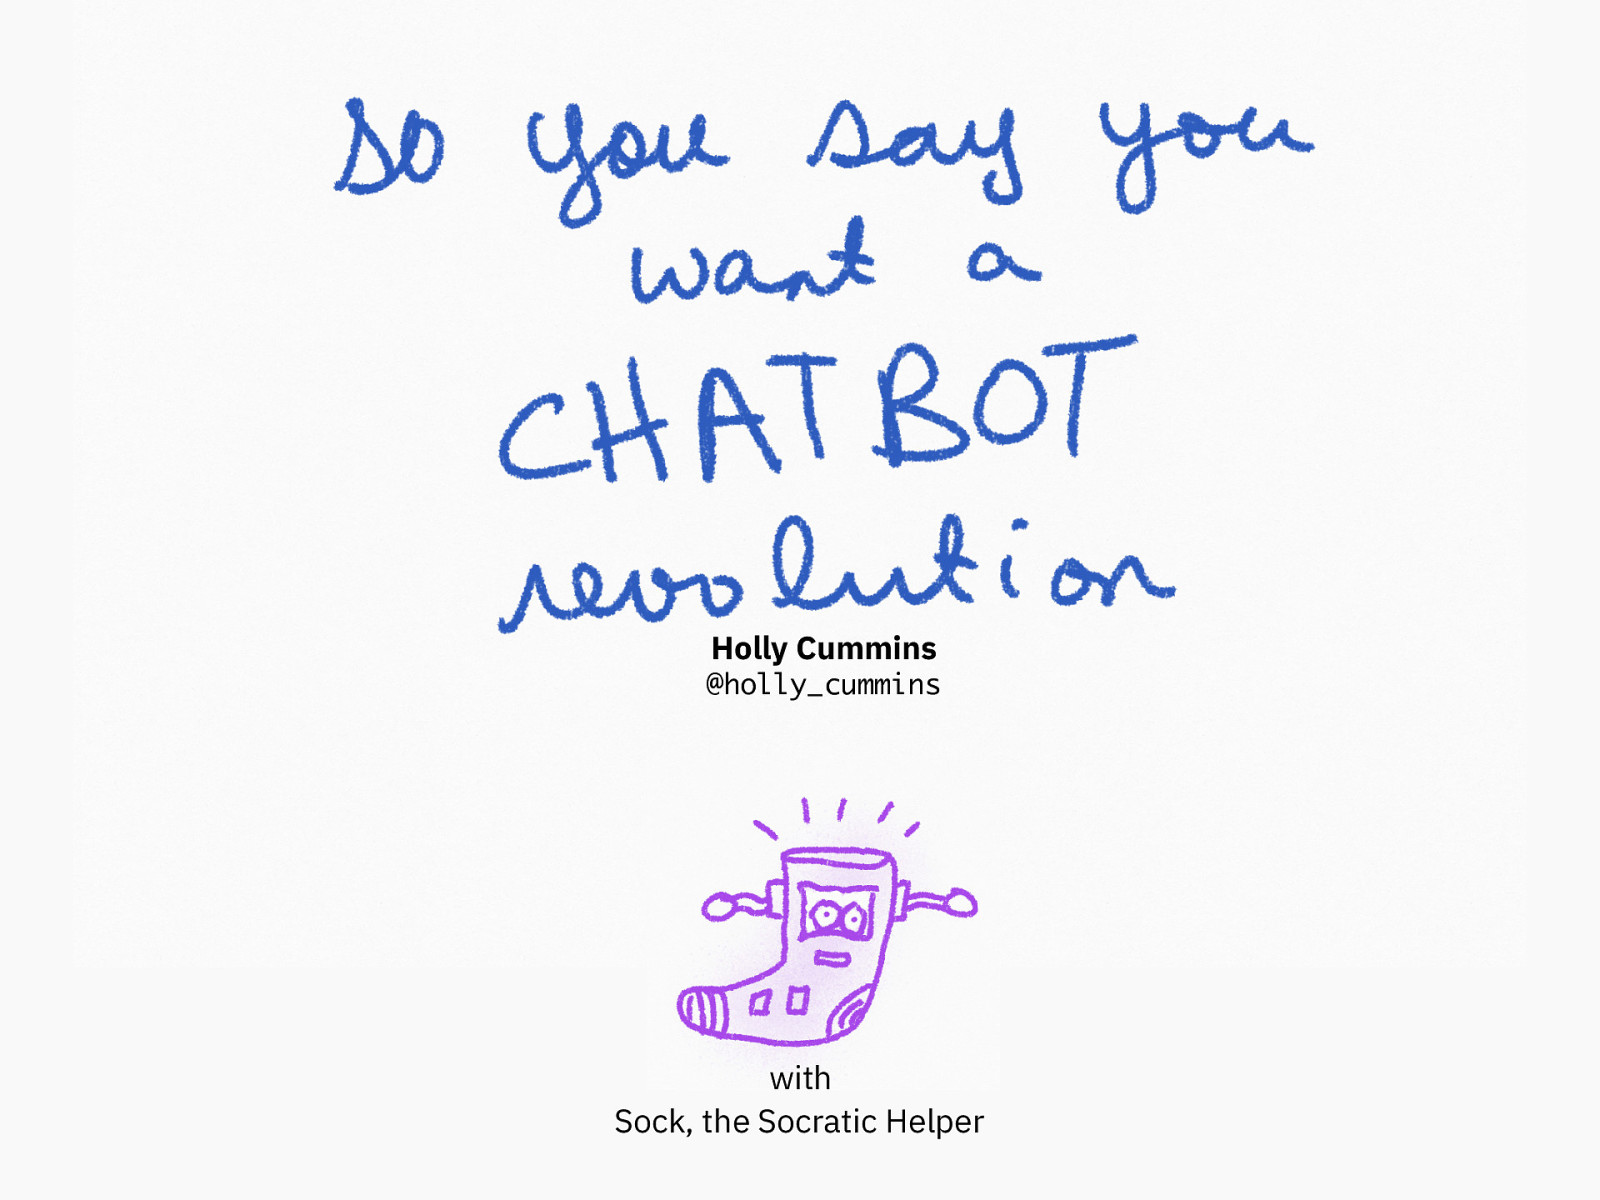 So You Say You Want a Chatbot Revolution